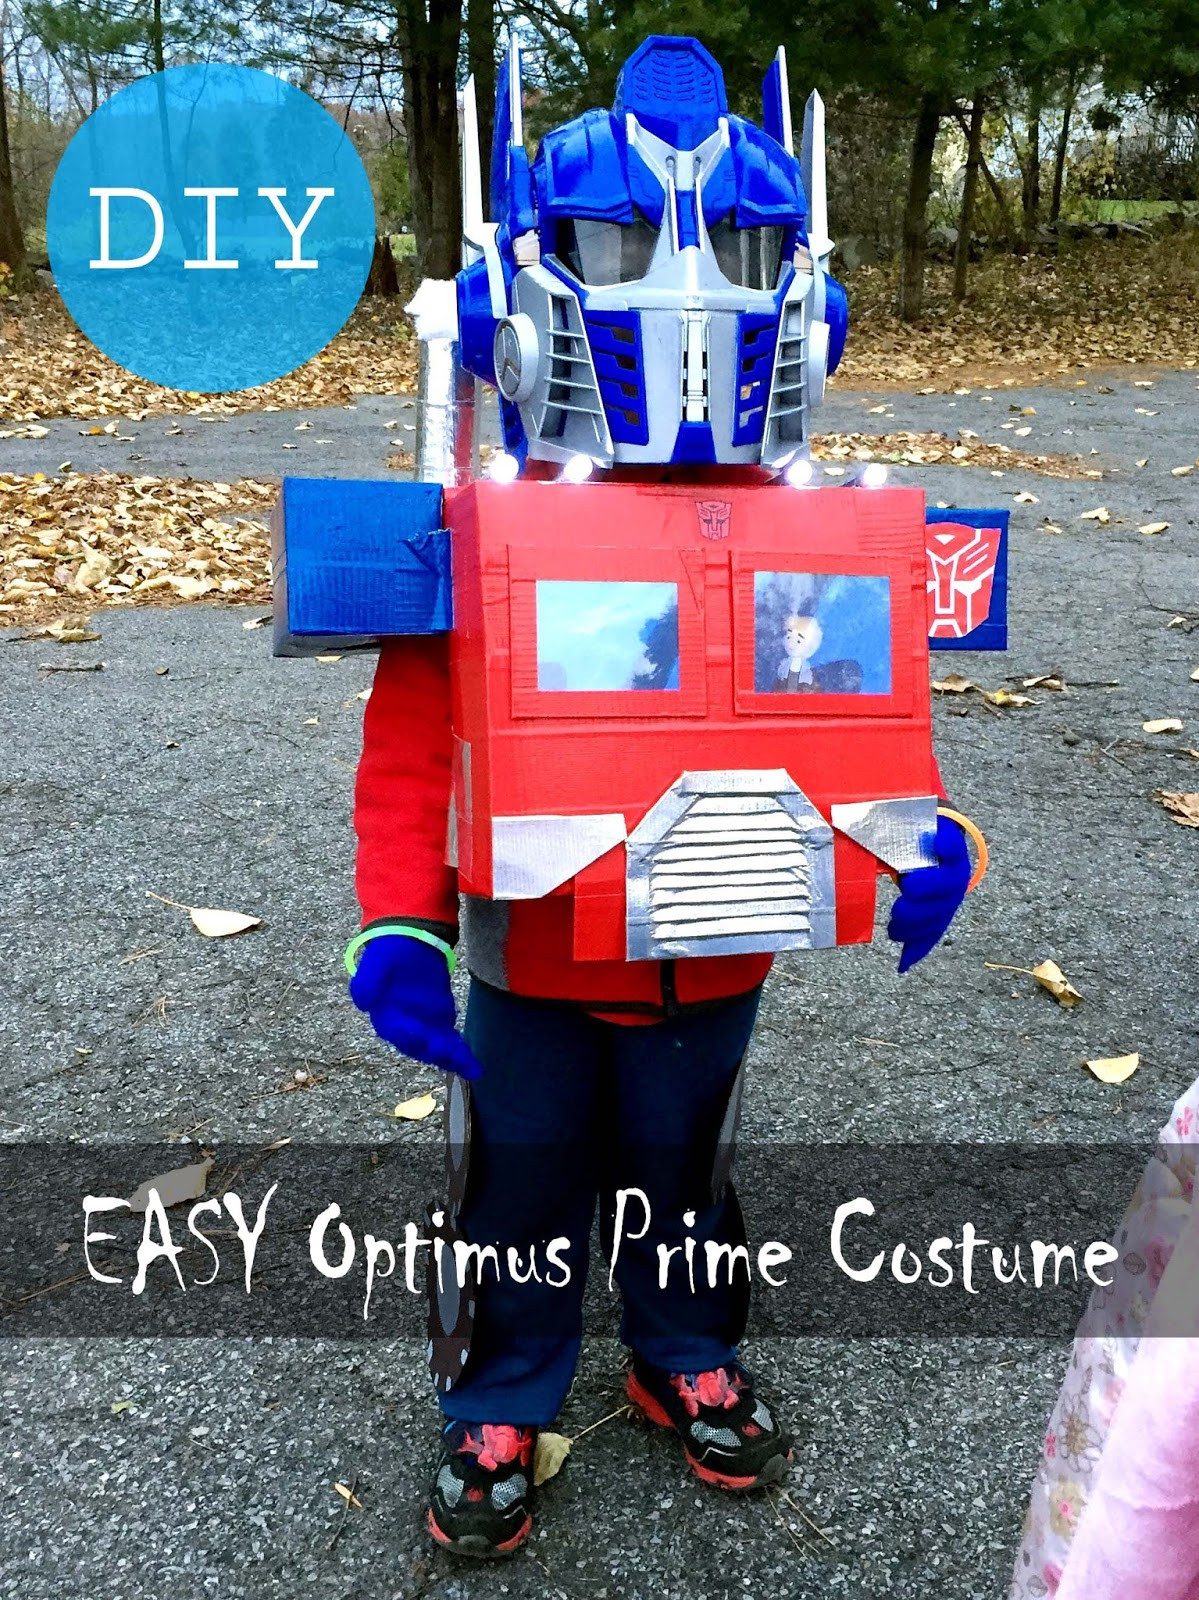 Best ideas about DIY Optimus Prime Costume . Save or Pin buckley journal EASY DIY Optimus Prime Costume Rescue Bots Now.